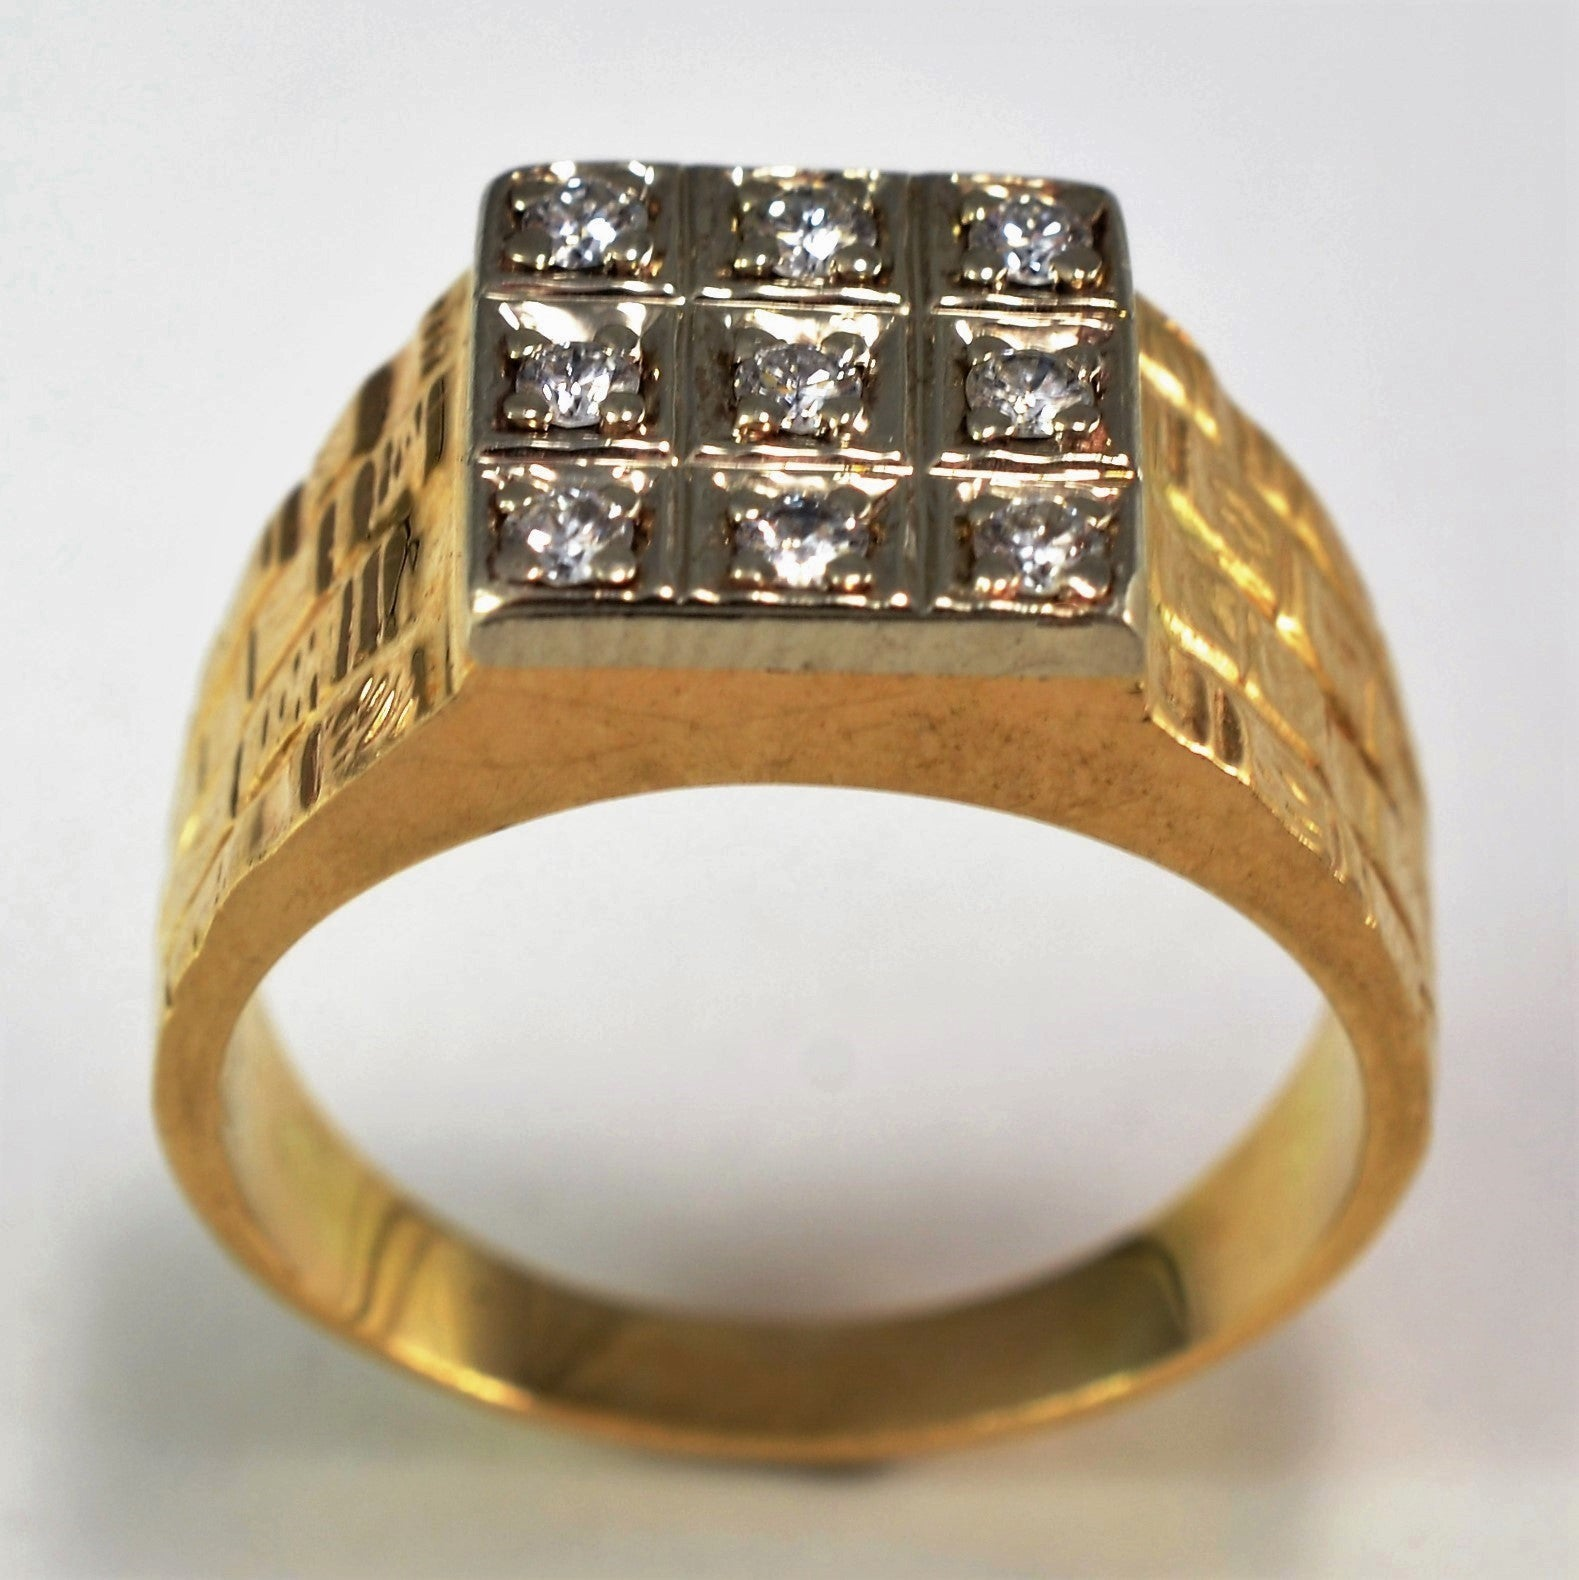 Diamond Grid Textured Cocktail Ring | 0.15 ctw, SZ 5.75 |